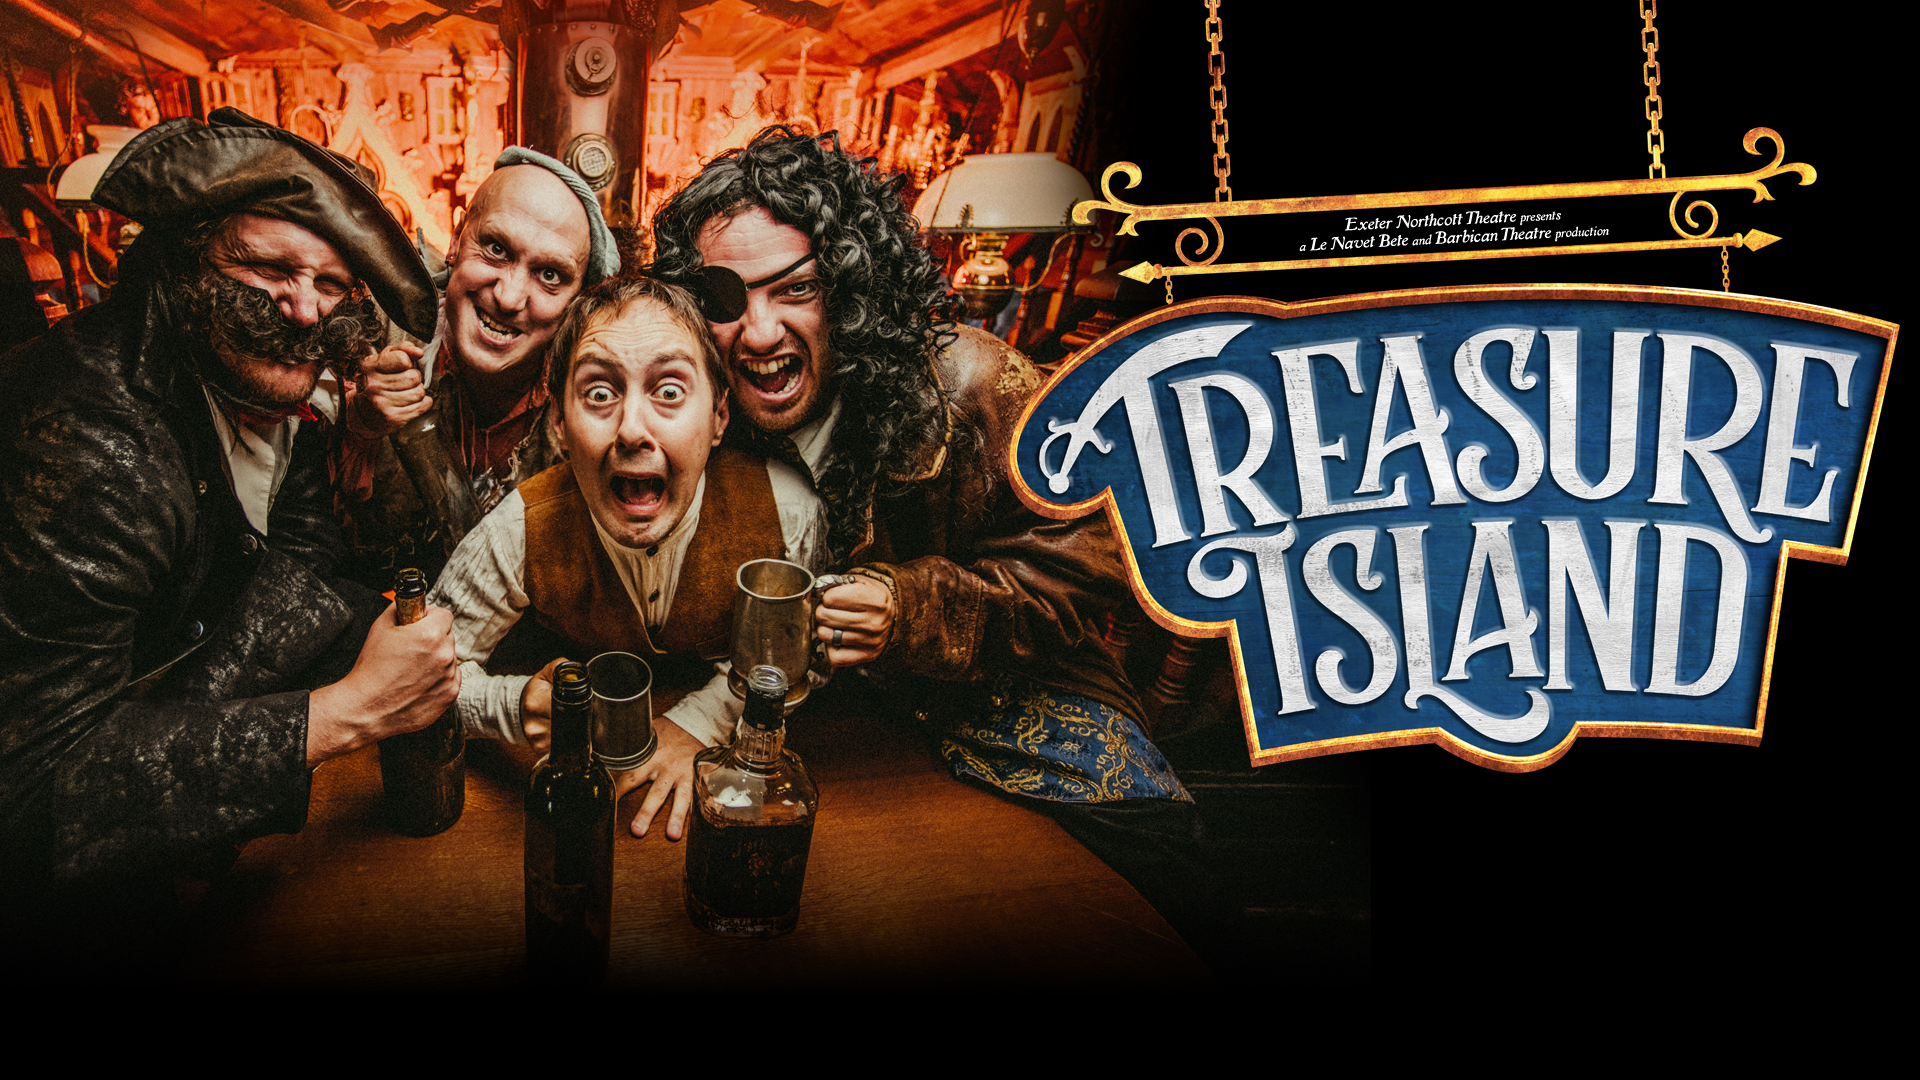 Treasure Island show cover, with characters